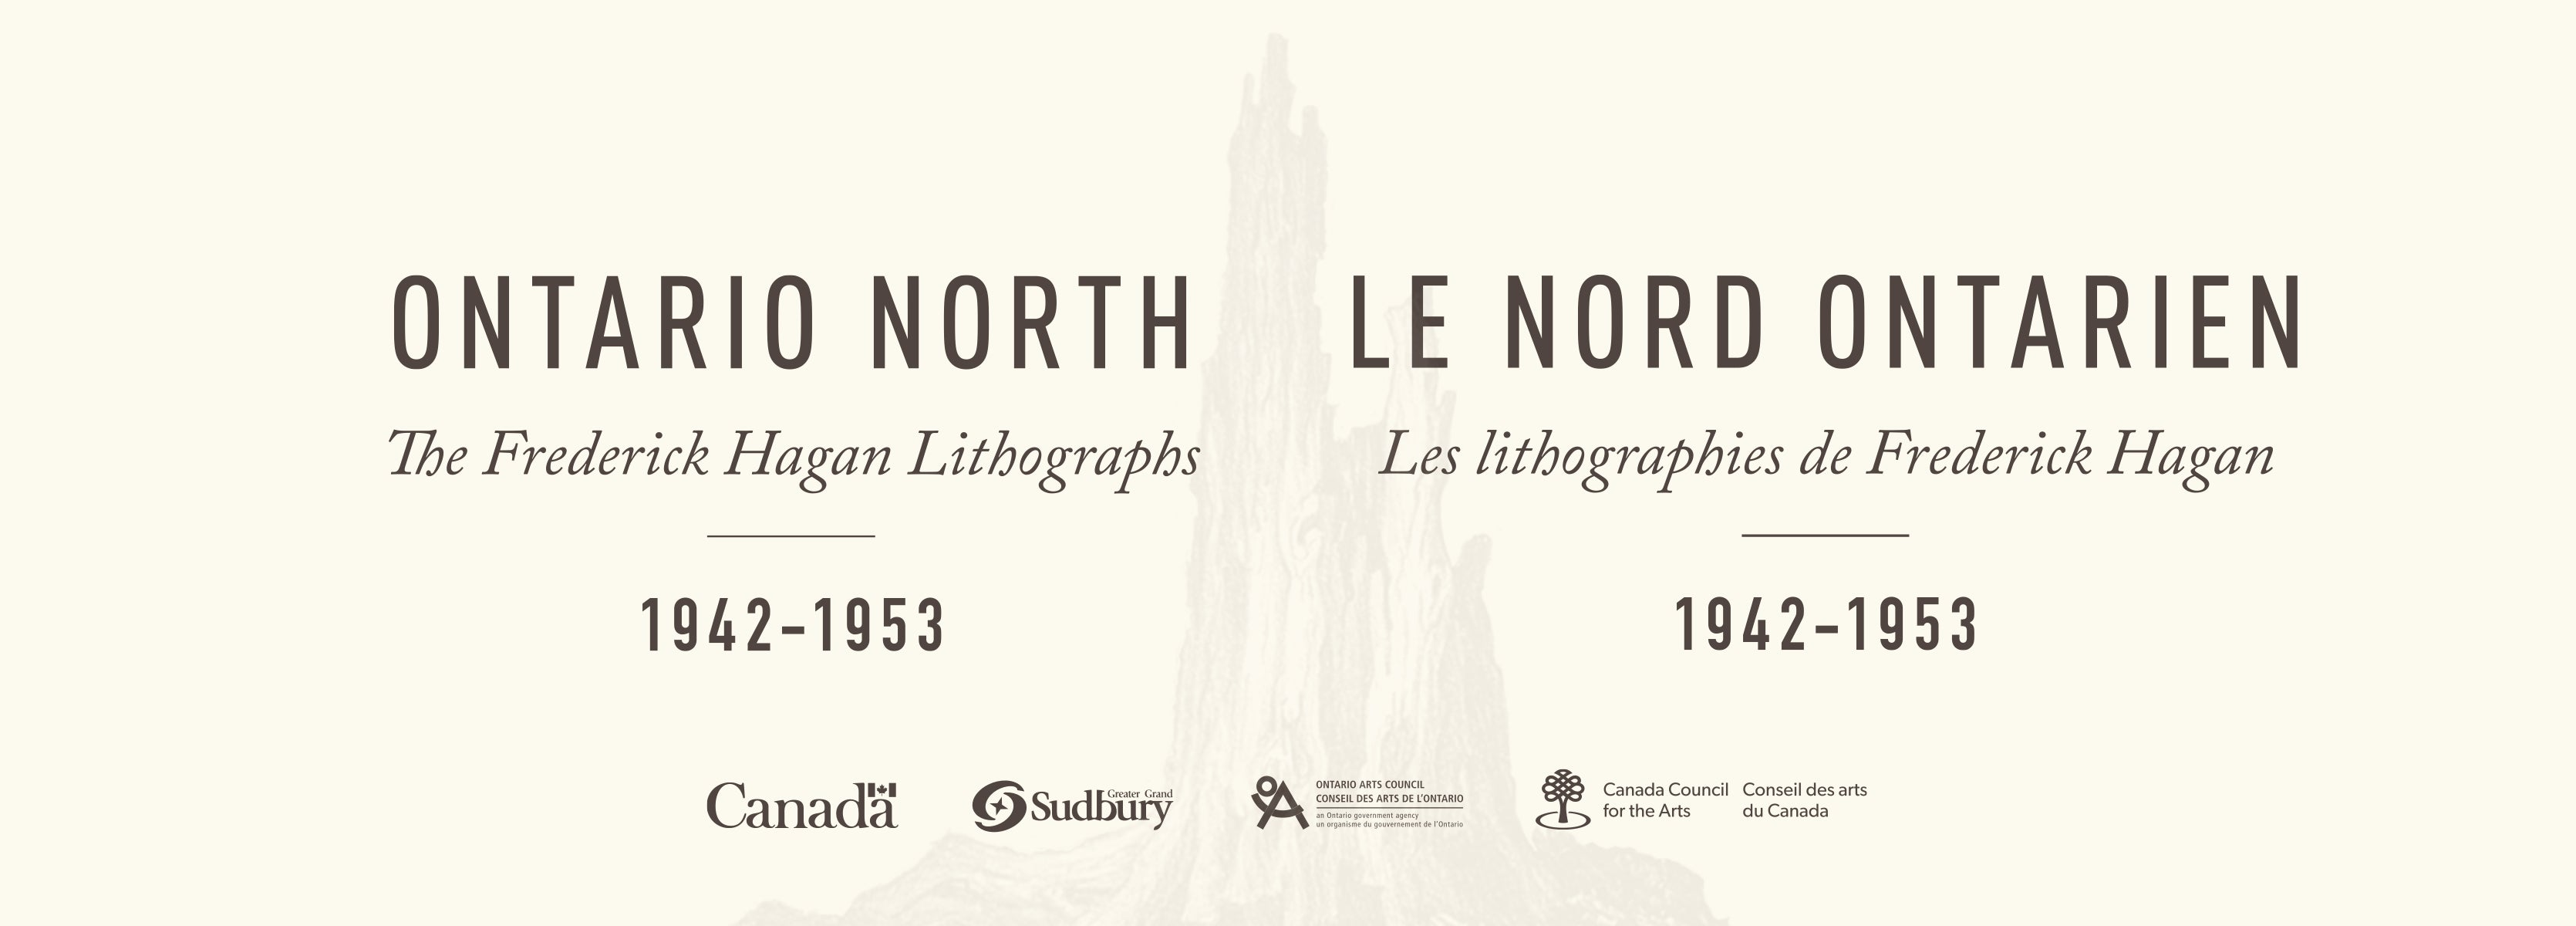 Ontario North: The Frederick Hagan Lithographs 1942-1953 Exhibit Title Card